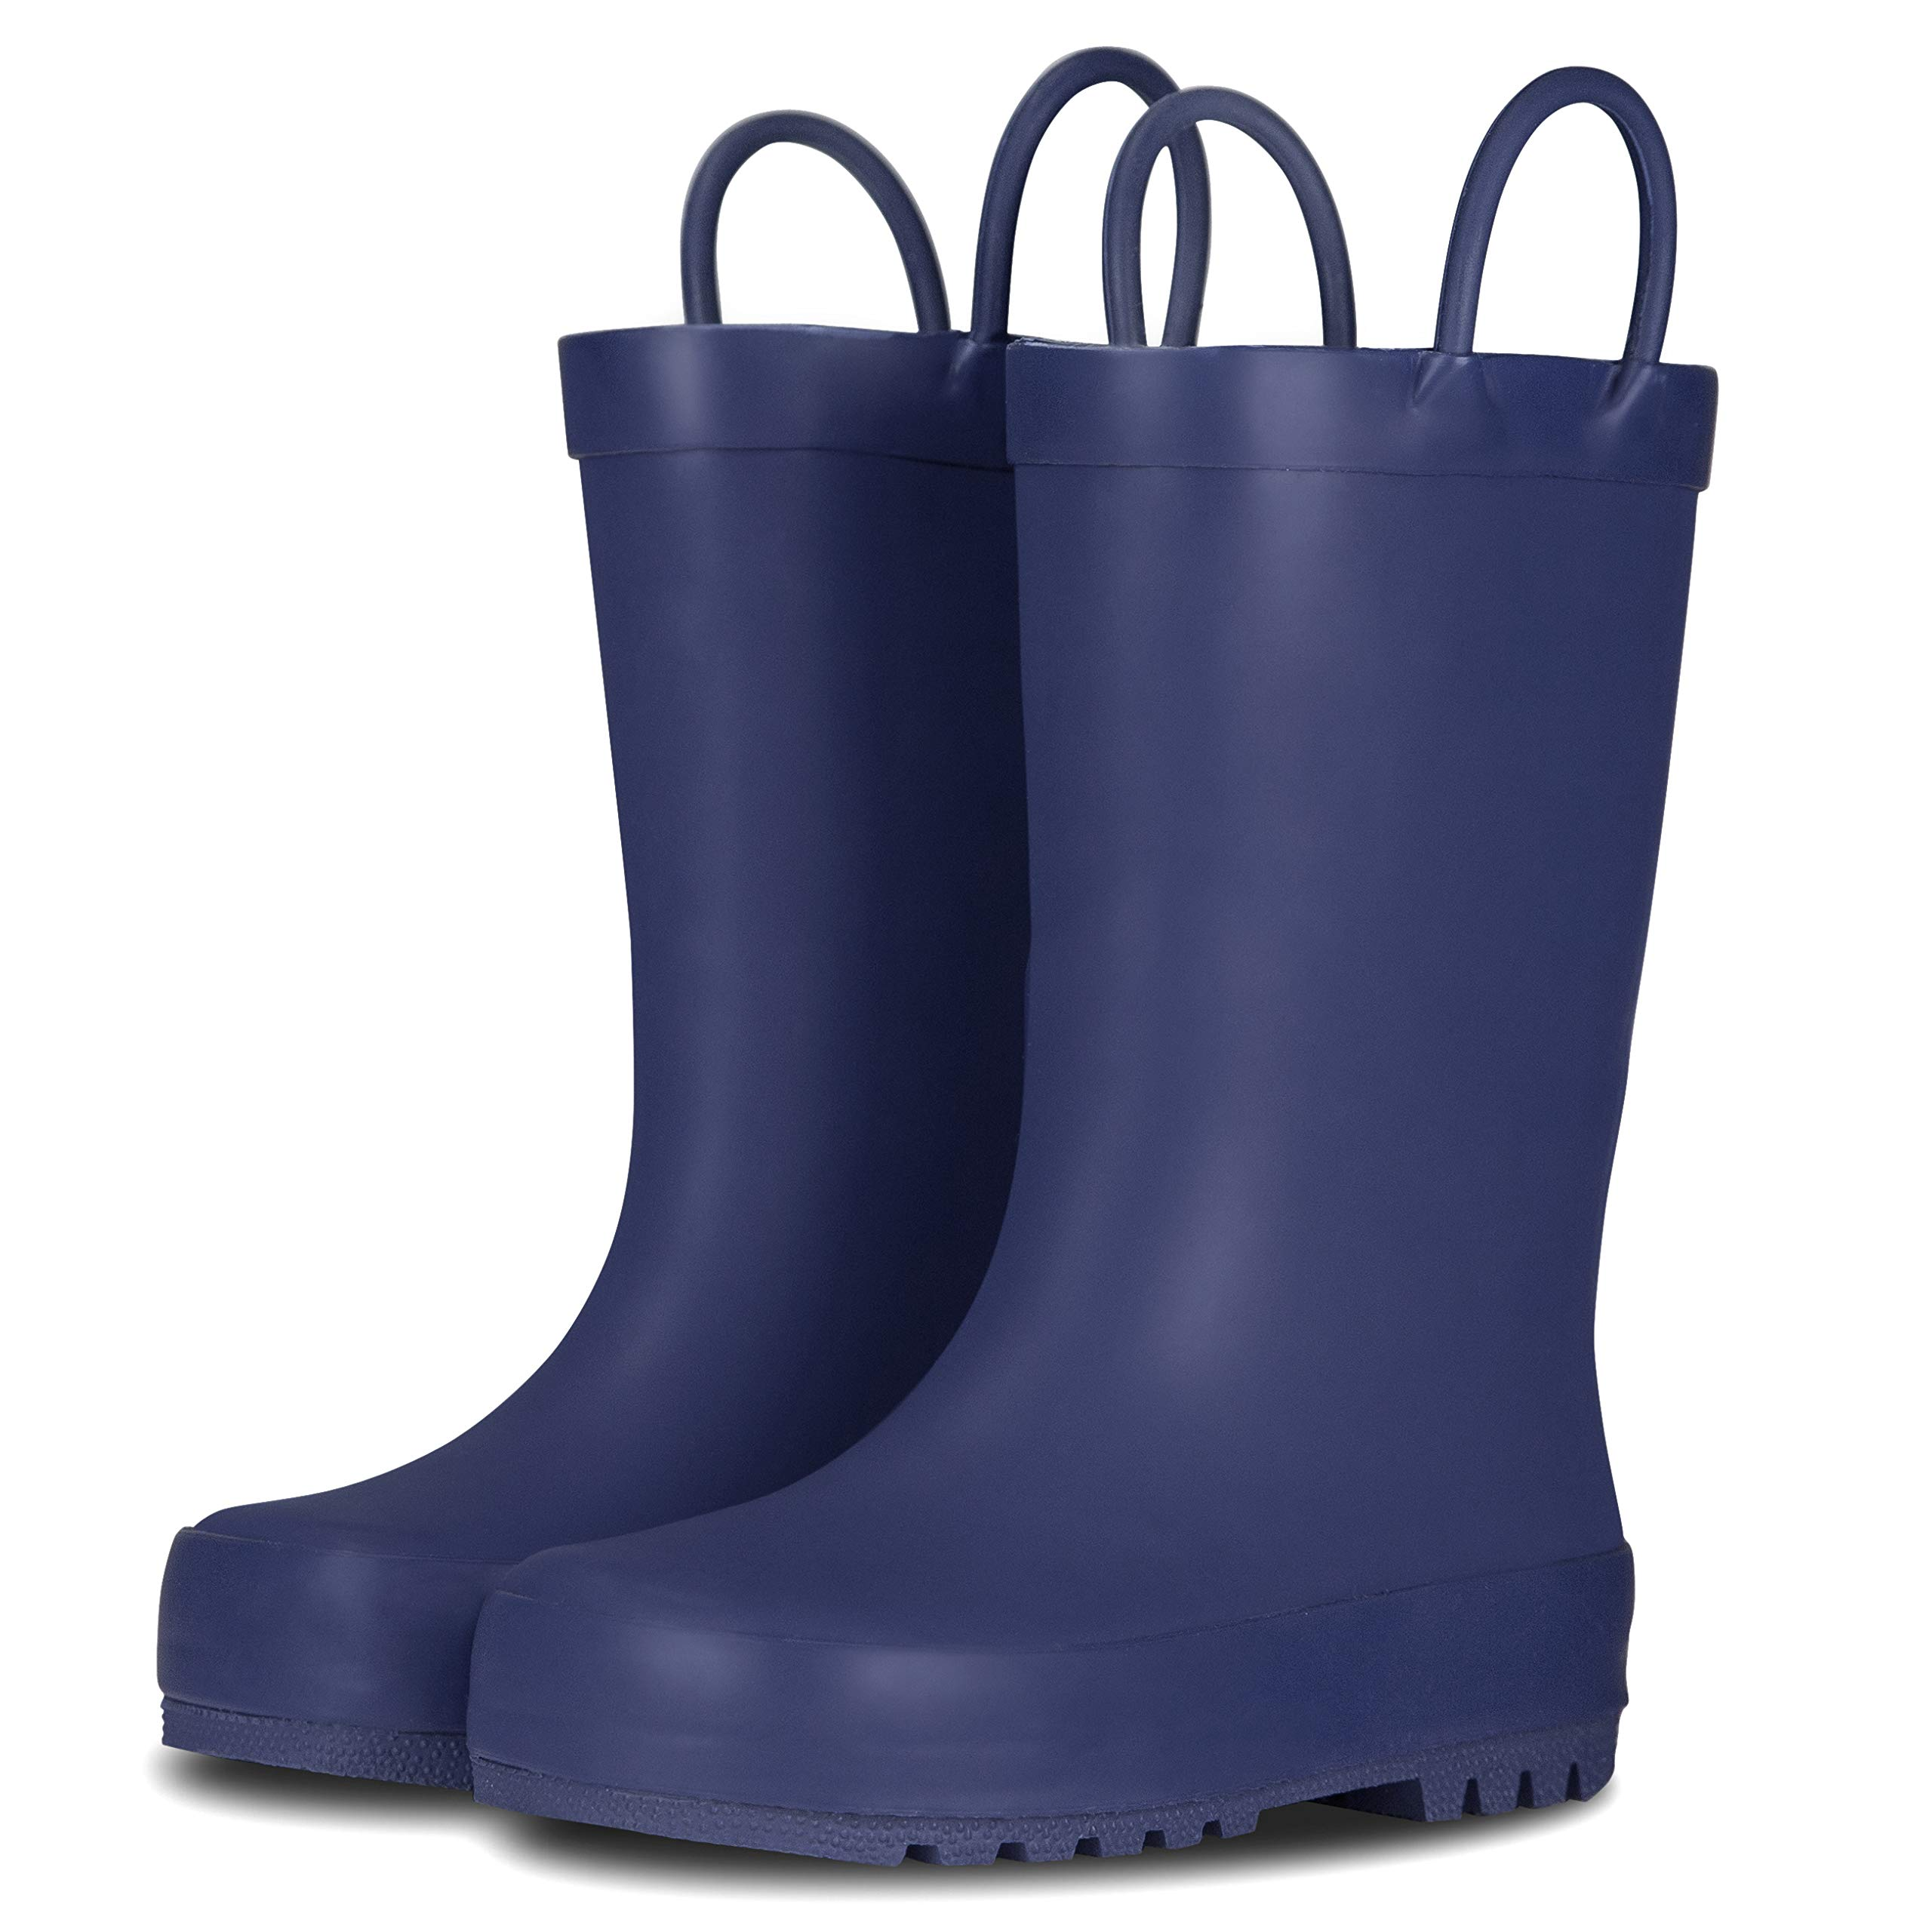 LONECONE Elementary Collection - Matte Rain Boots with Easy-On Handles for Toddlers and Kids, Ribbon Blue, Big Kid 4 by LONECONE (Image #1)